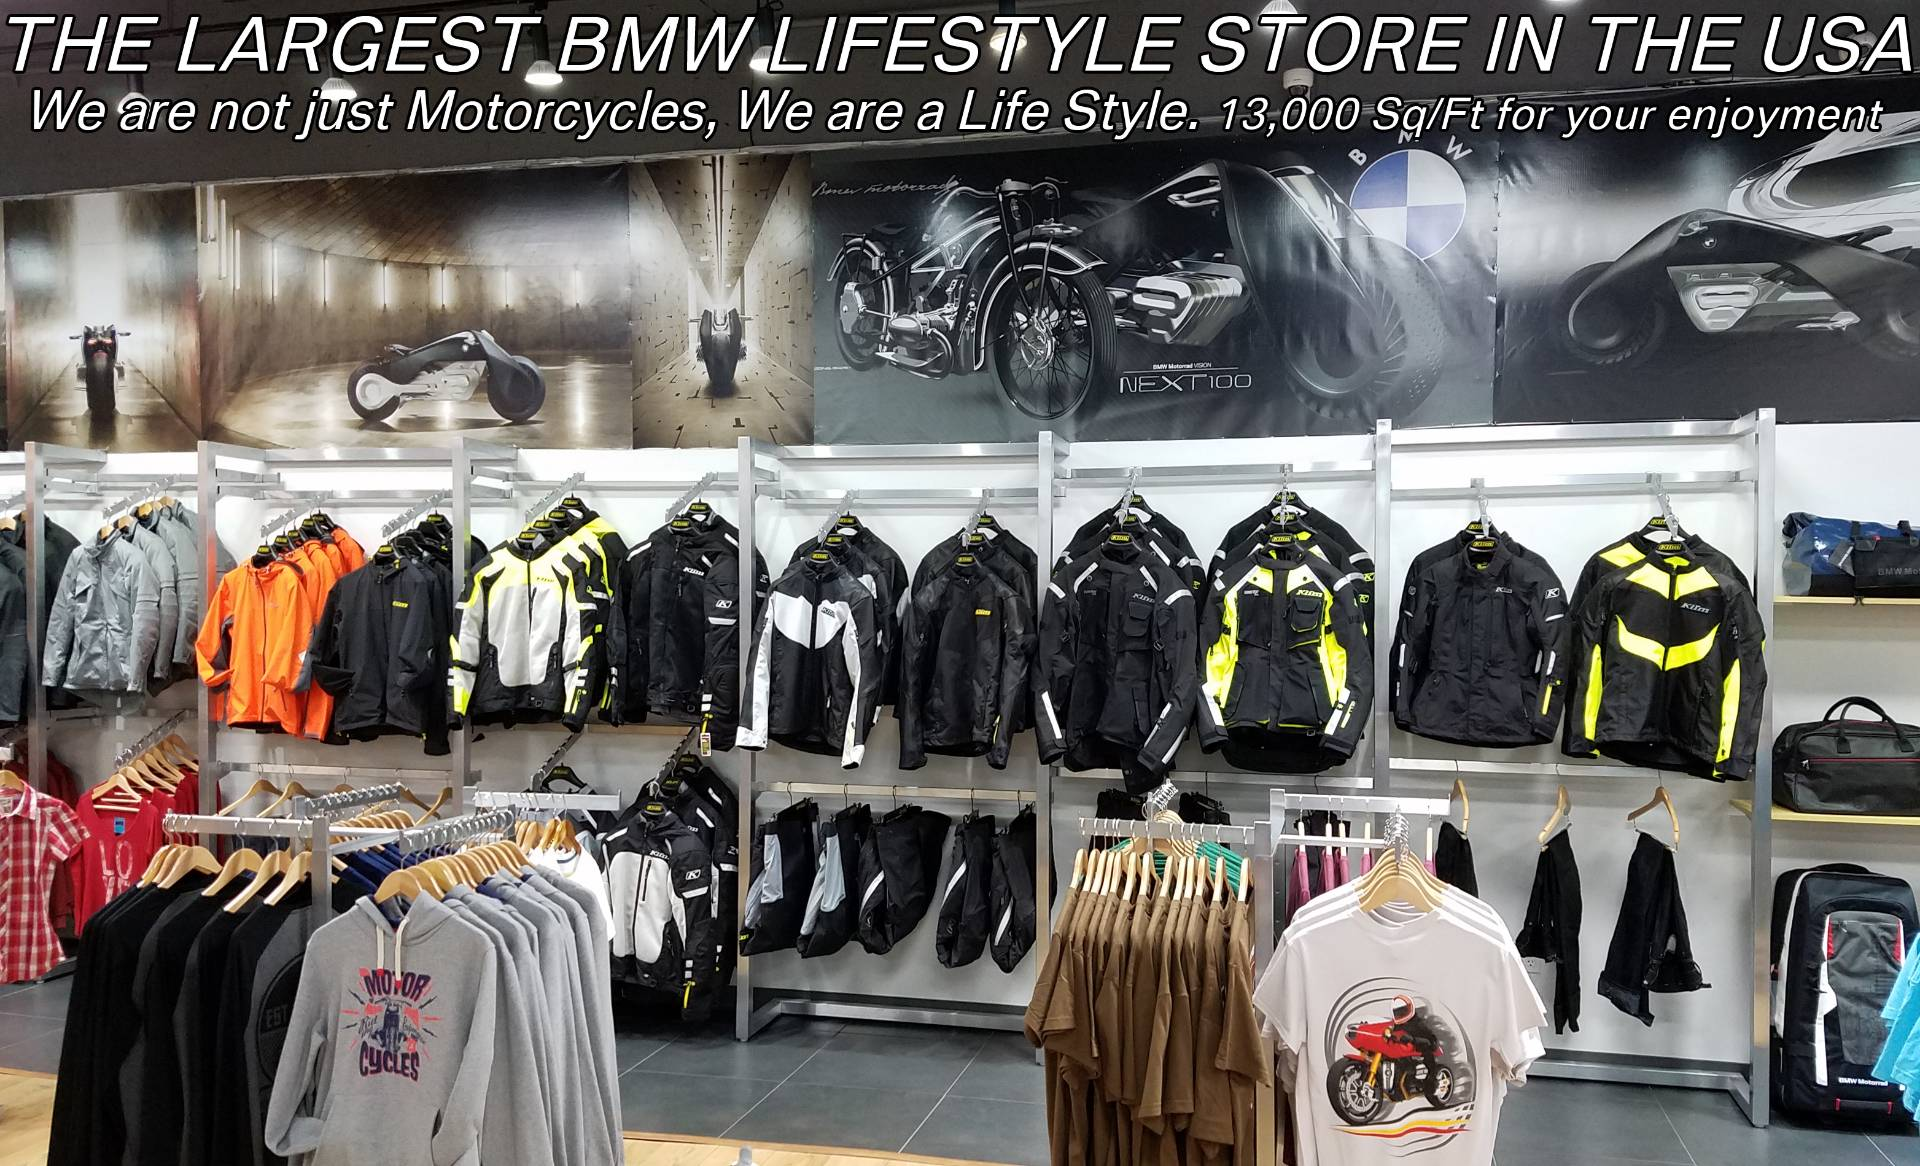 New 2019 BMW R 1250 GS for sale, New BMW for sale R 1250GS, New BMW Motorcycle R1250GS for sale, new BMW 1250GS, R1250GS, GS. BMW Motorcycles of Miami, Motorcycles of Miami, Motorcycles Miami, New Motorcycles, Used Motorcycles, pre-owned. #BMWMotorcyclesOfMiami #MotorcyclesOfMiami. - Photo 51